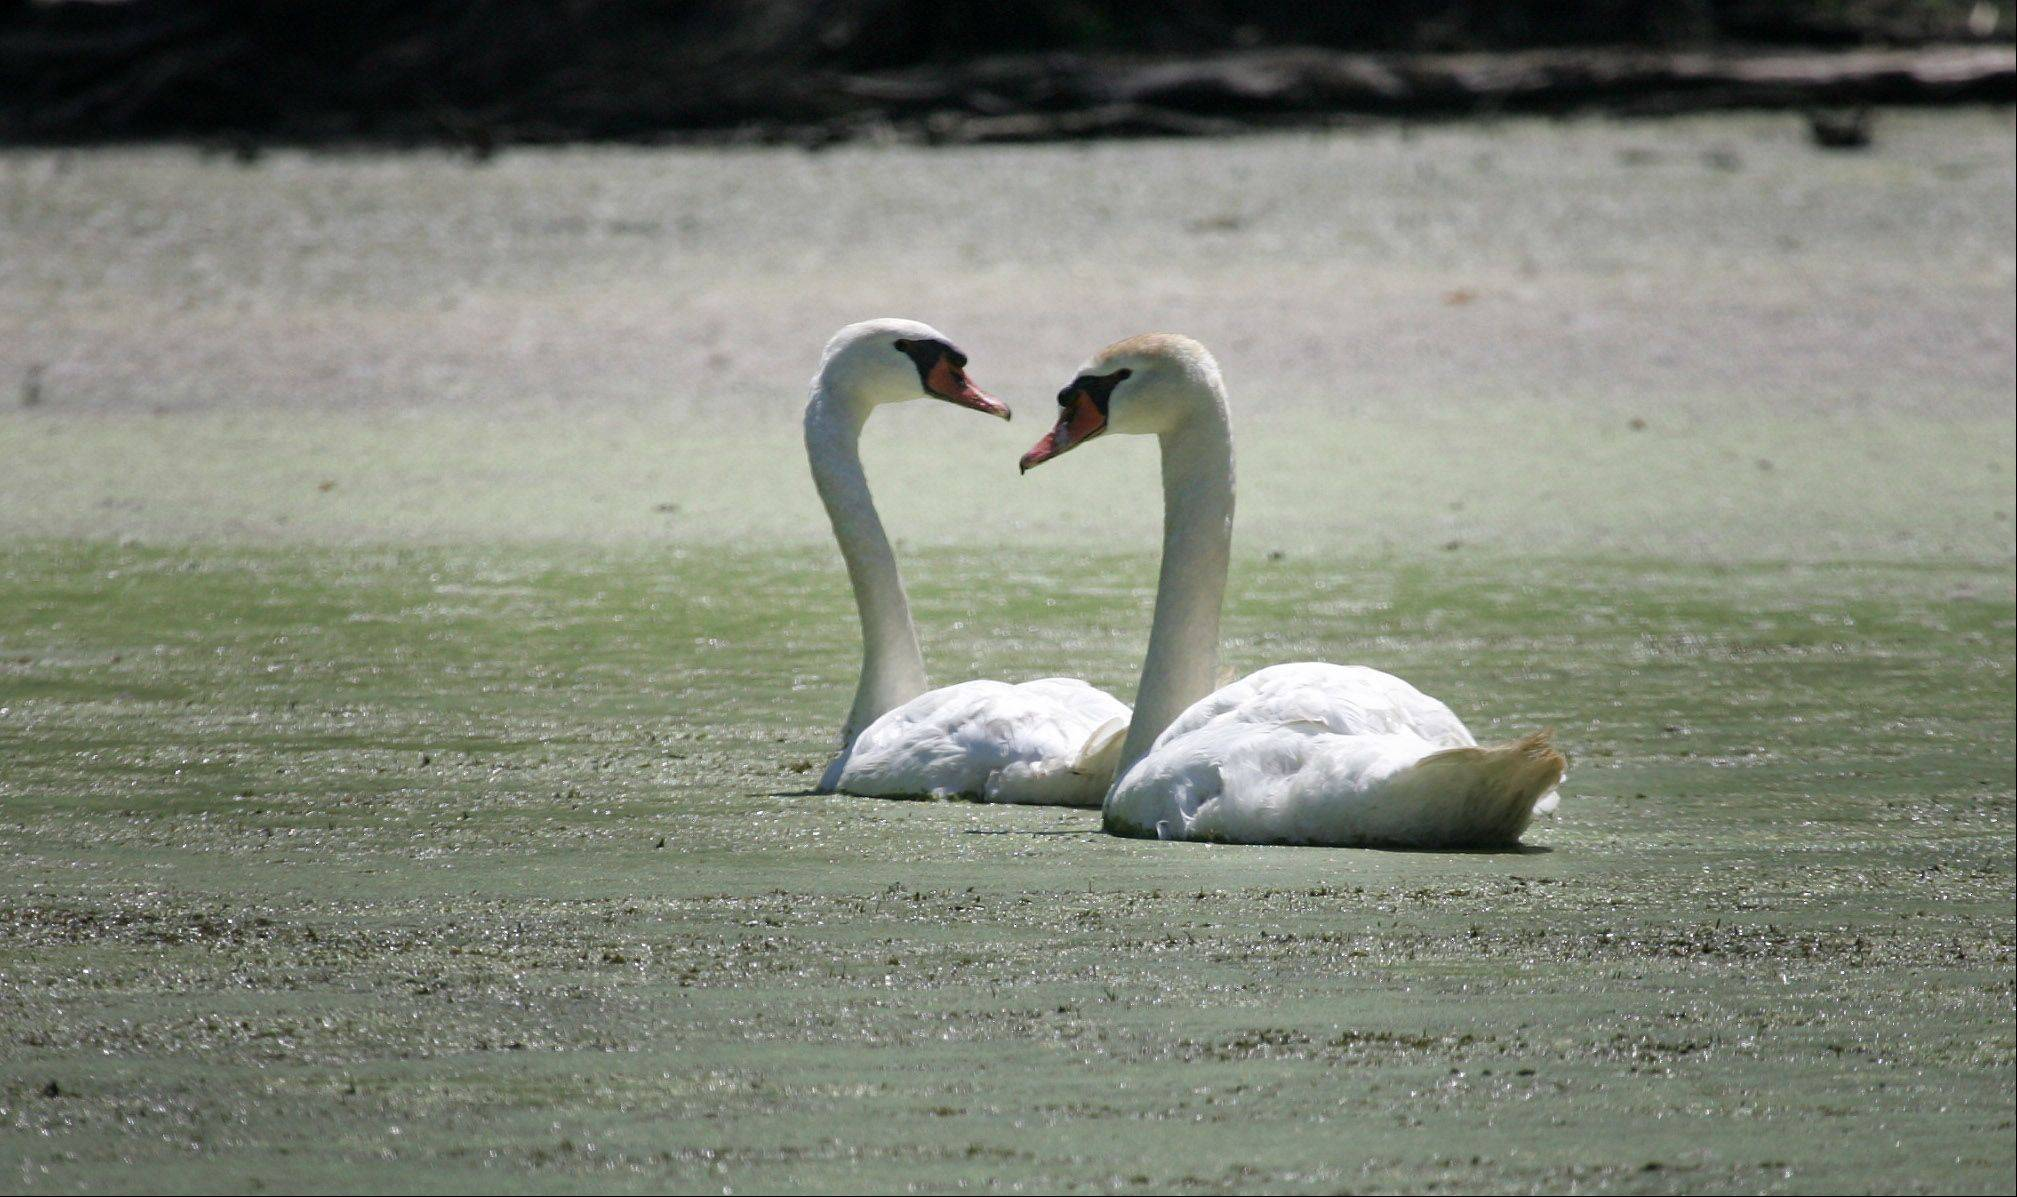 Concern for swans brings expert to Mundelein golf course